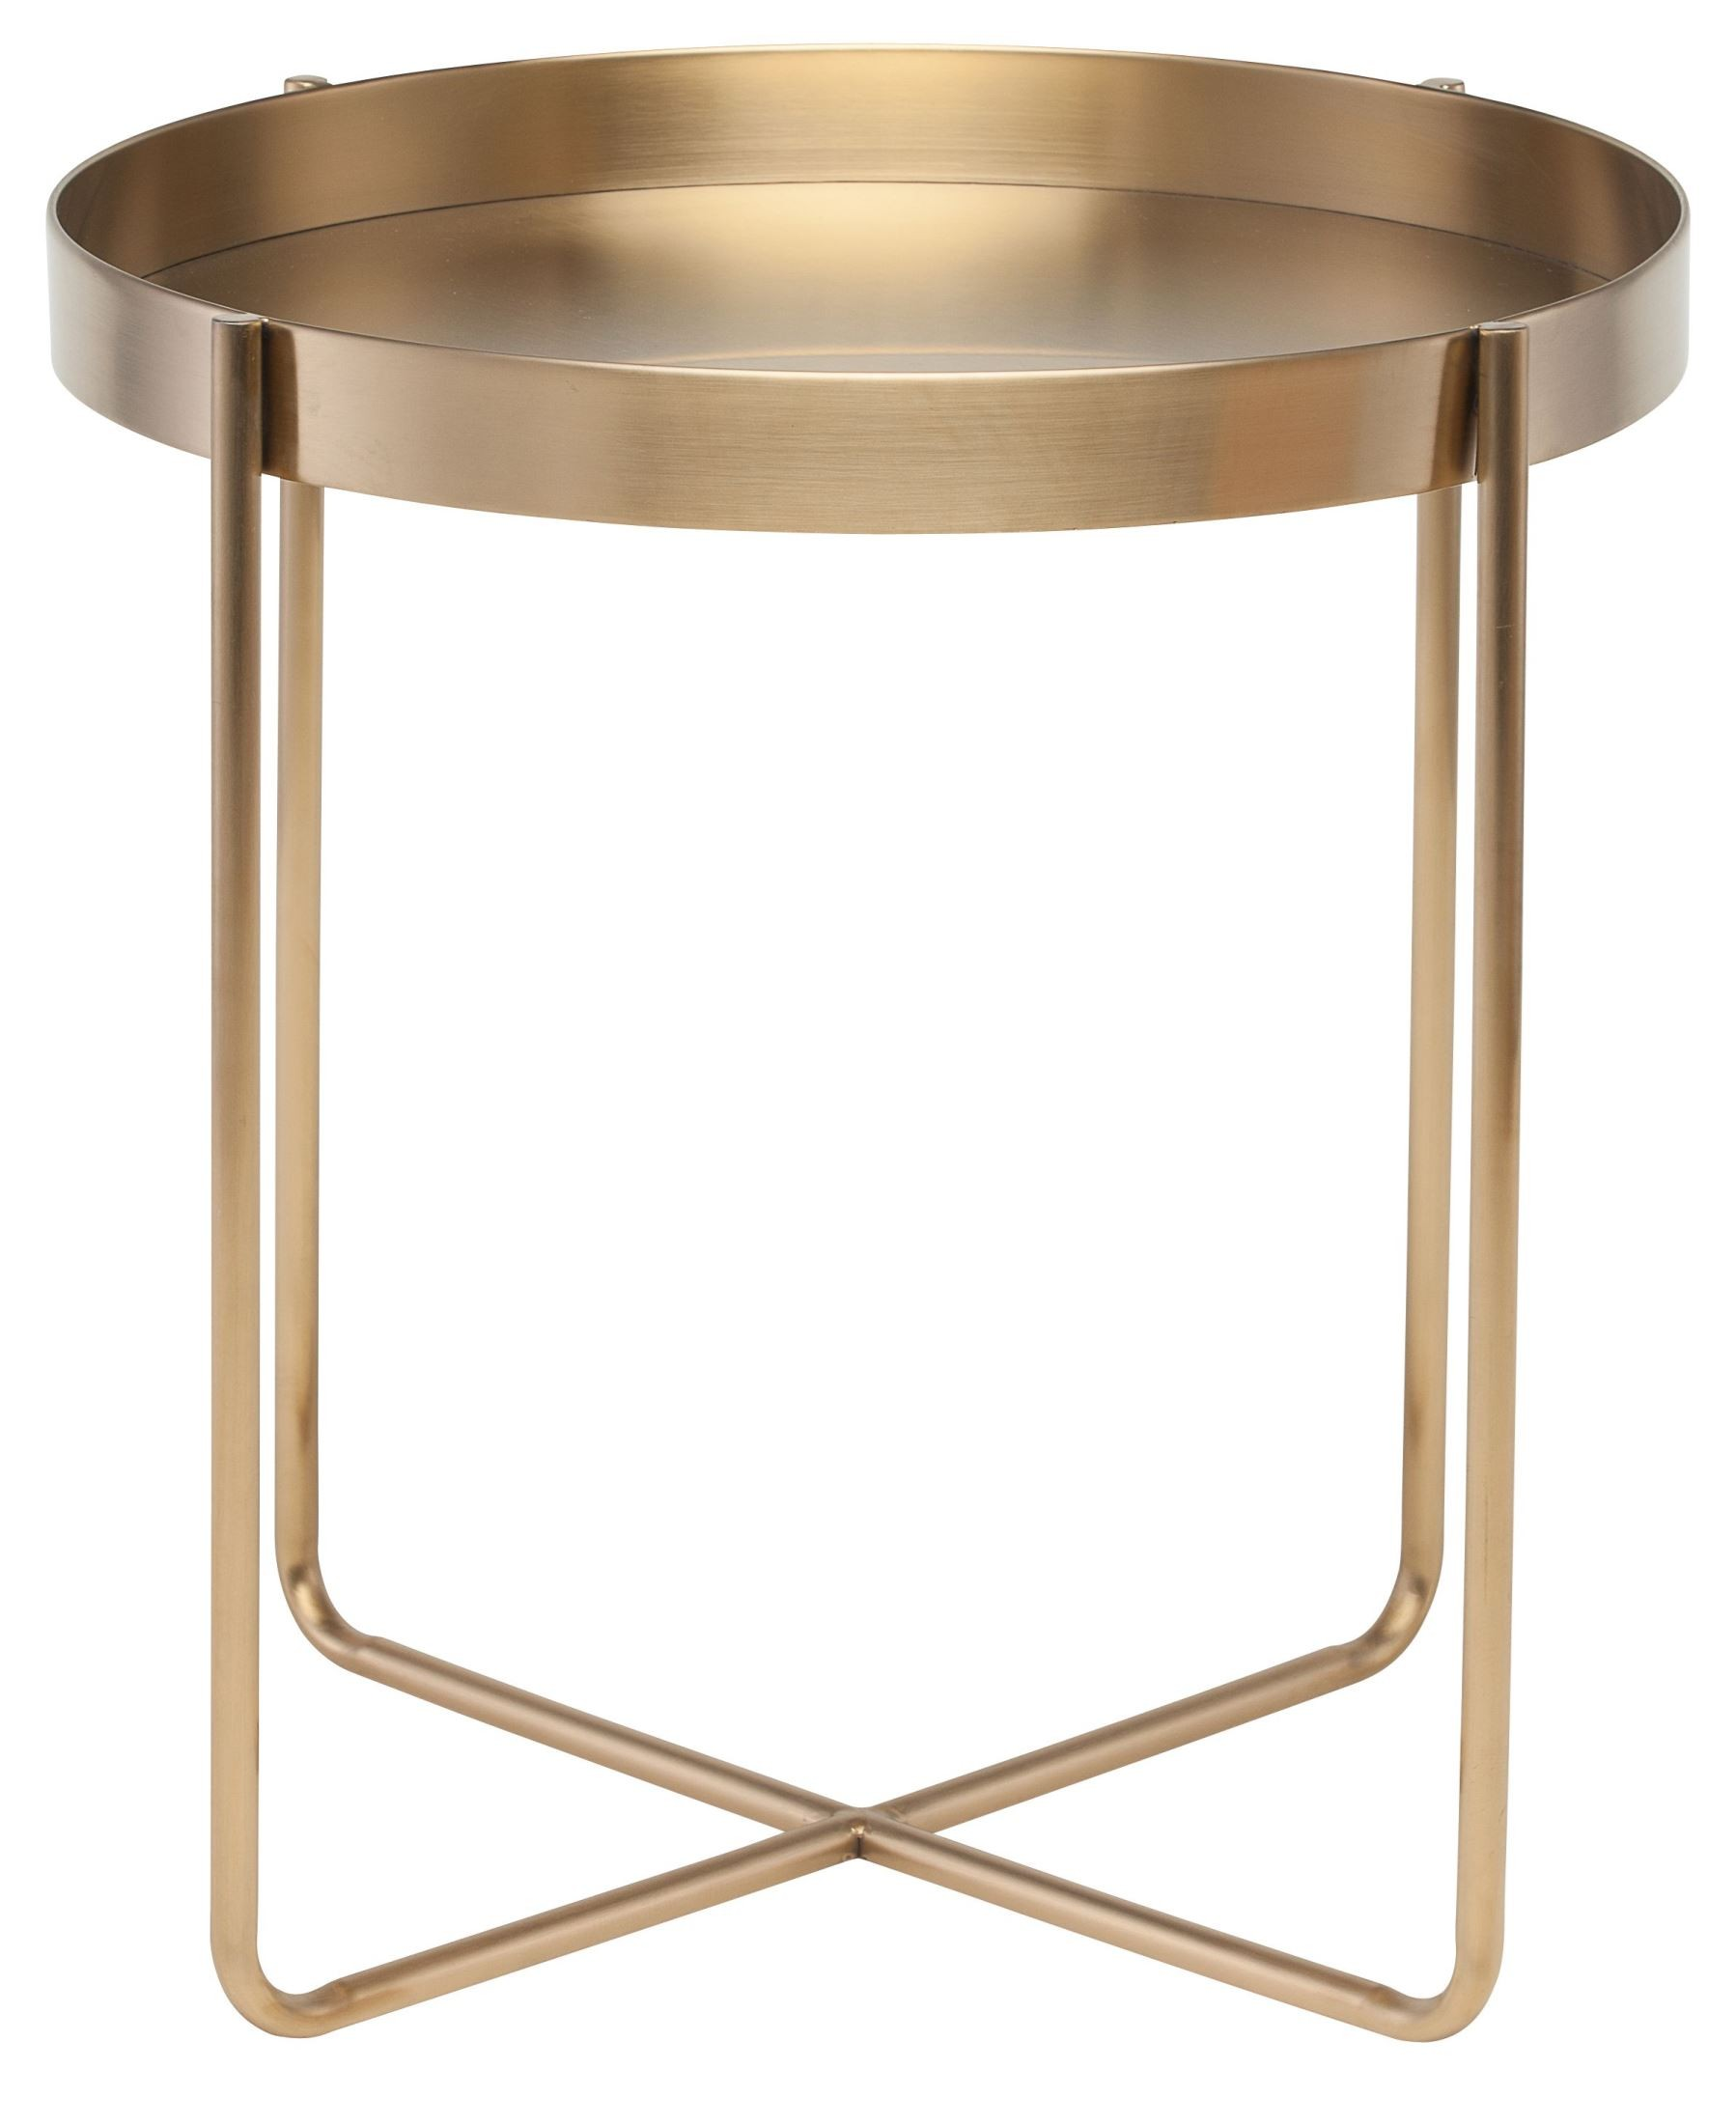 Gaultier Gold Metal Side Table From Nuevo